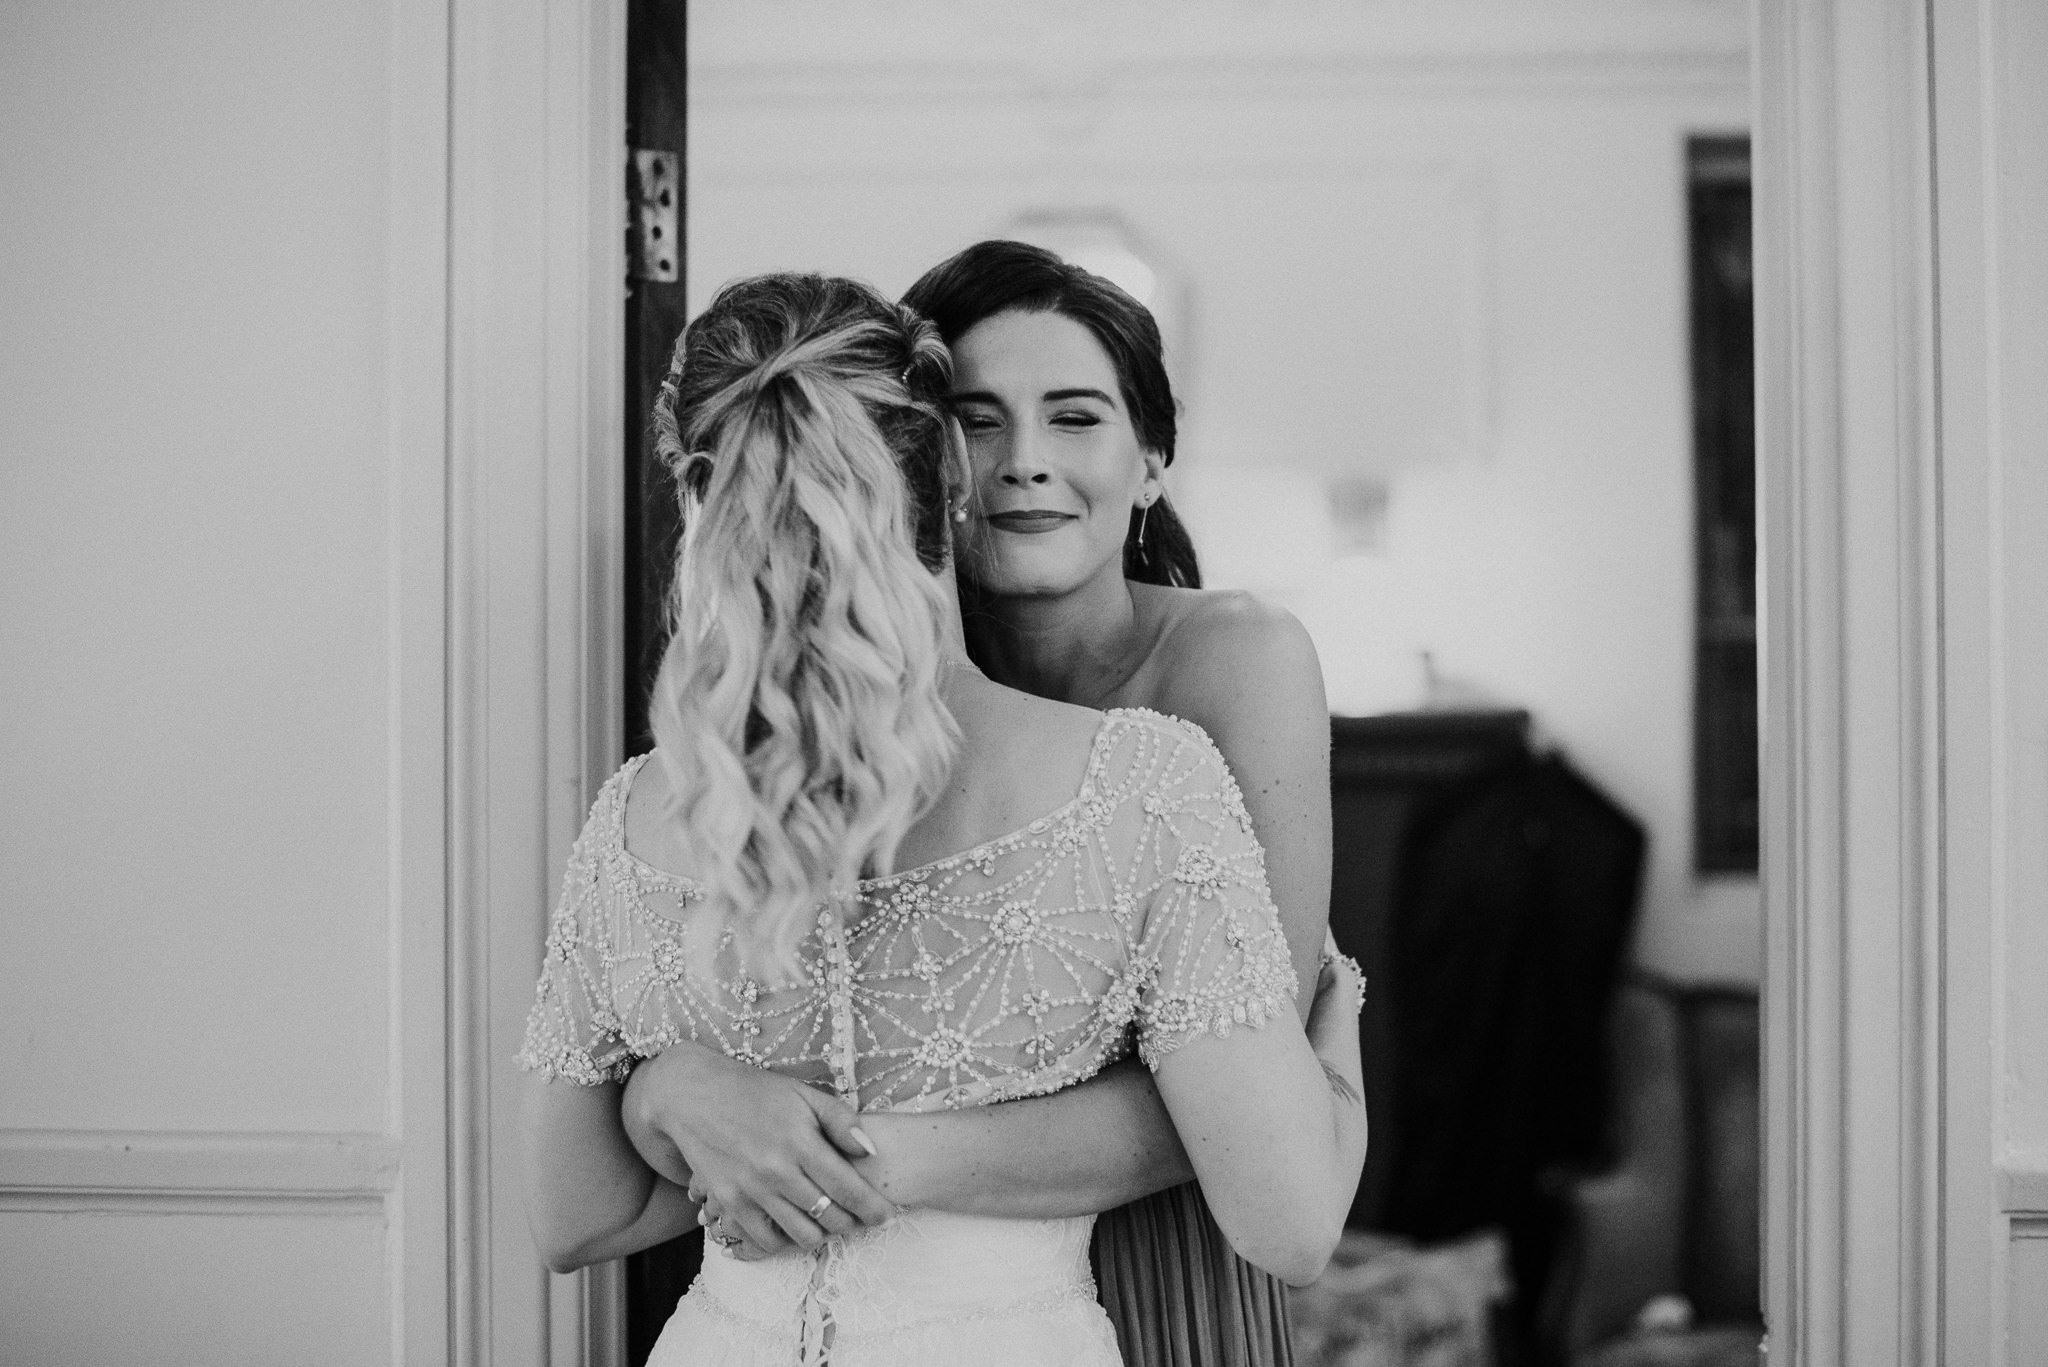 109-vintage-vancouver-gastown-same-sex-wedding-the-permanent-ellesarah-sara-rogers-photography-0773.jpg